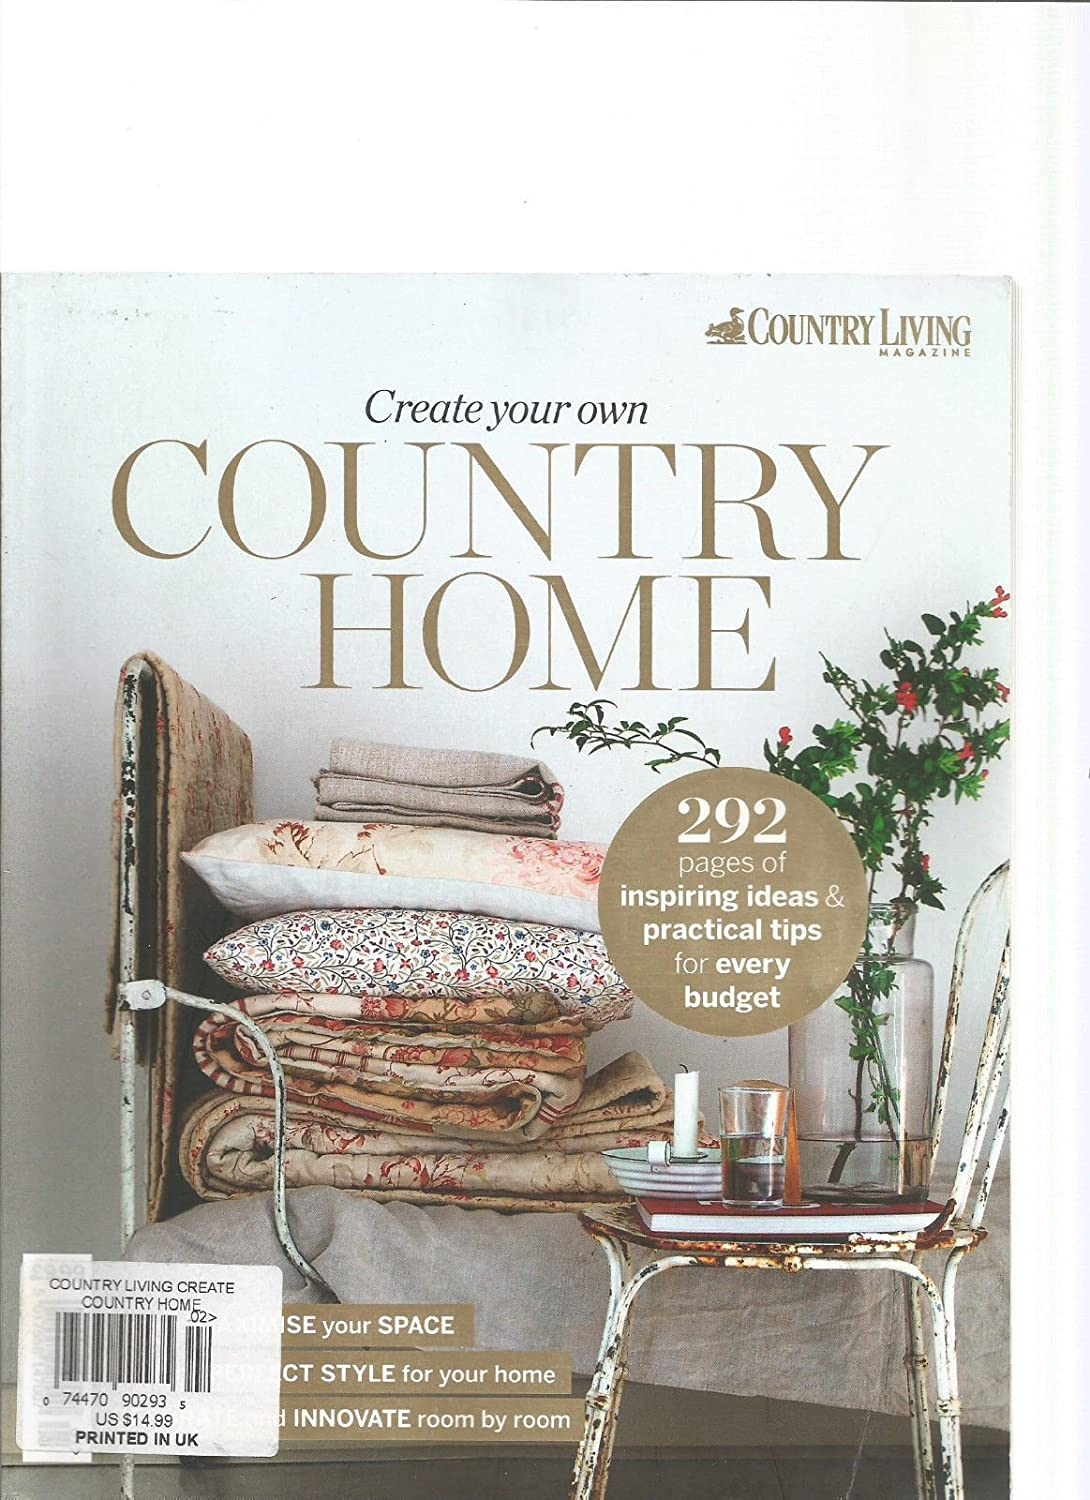 Amazon.com : COUNTRY LIVING MAGAZINE CREATE YOUR OWN COUNTRY HOME ...